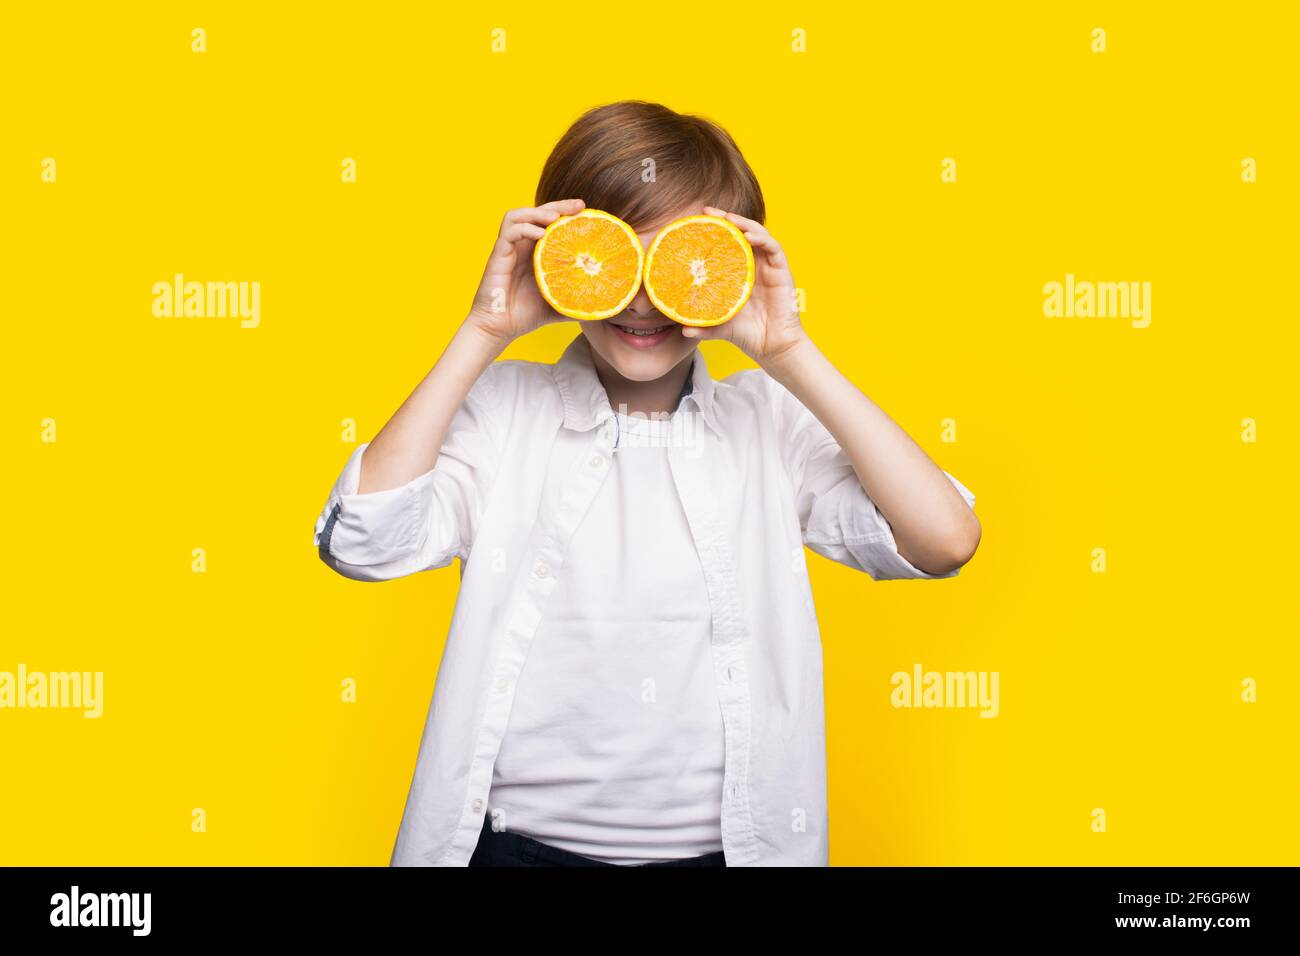 Caucasian boy is covering his eye with sliced lemons smiling on a yellow studio wall Stock Photo